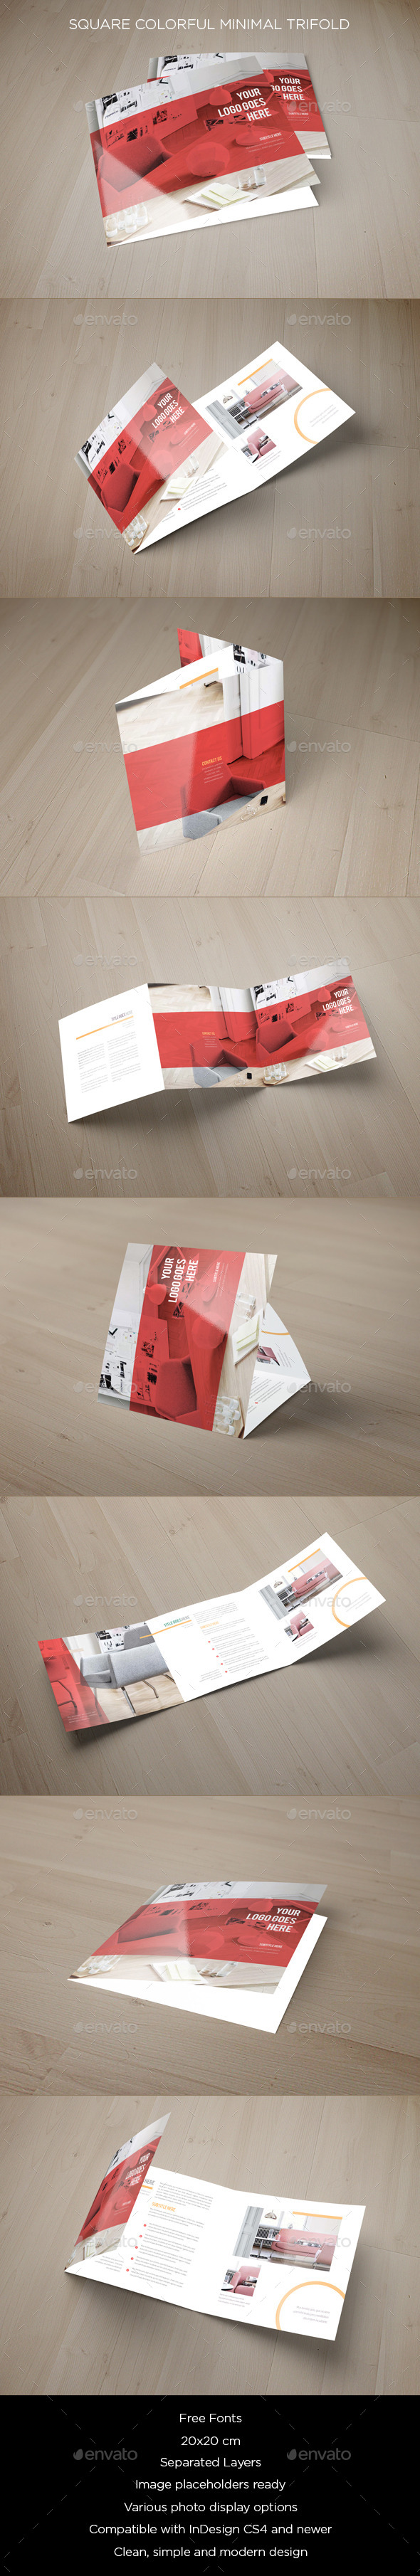 Square Colorful Minimal Trifold